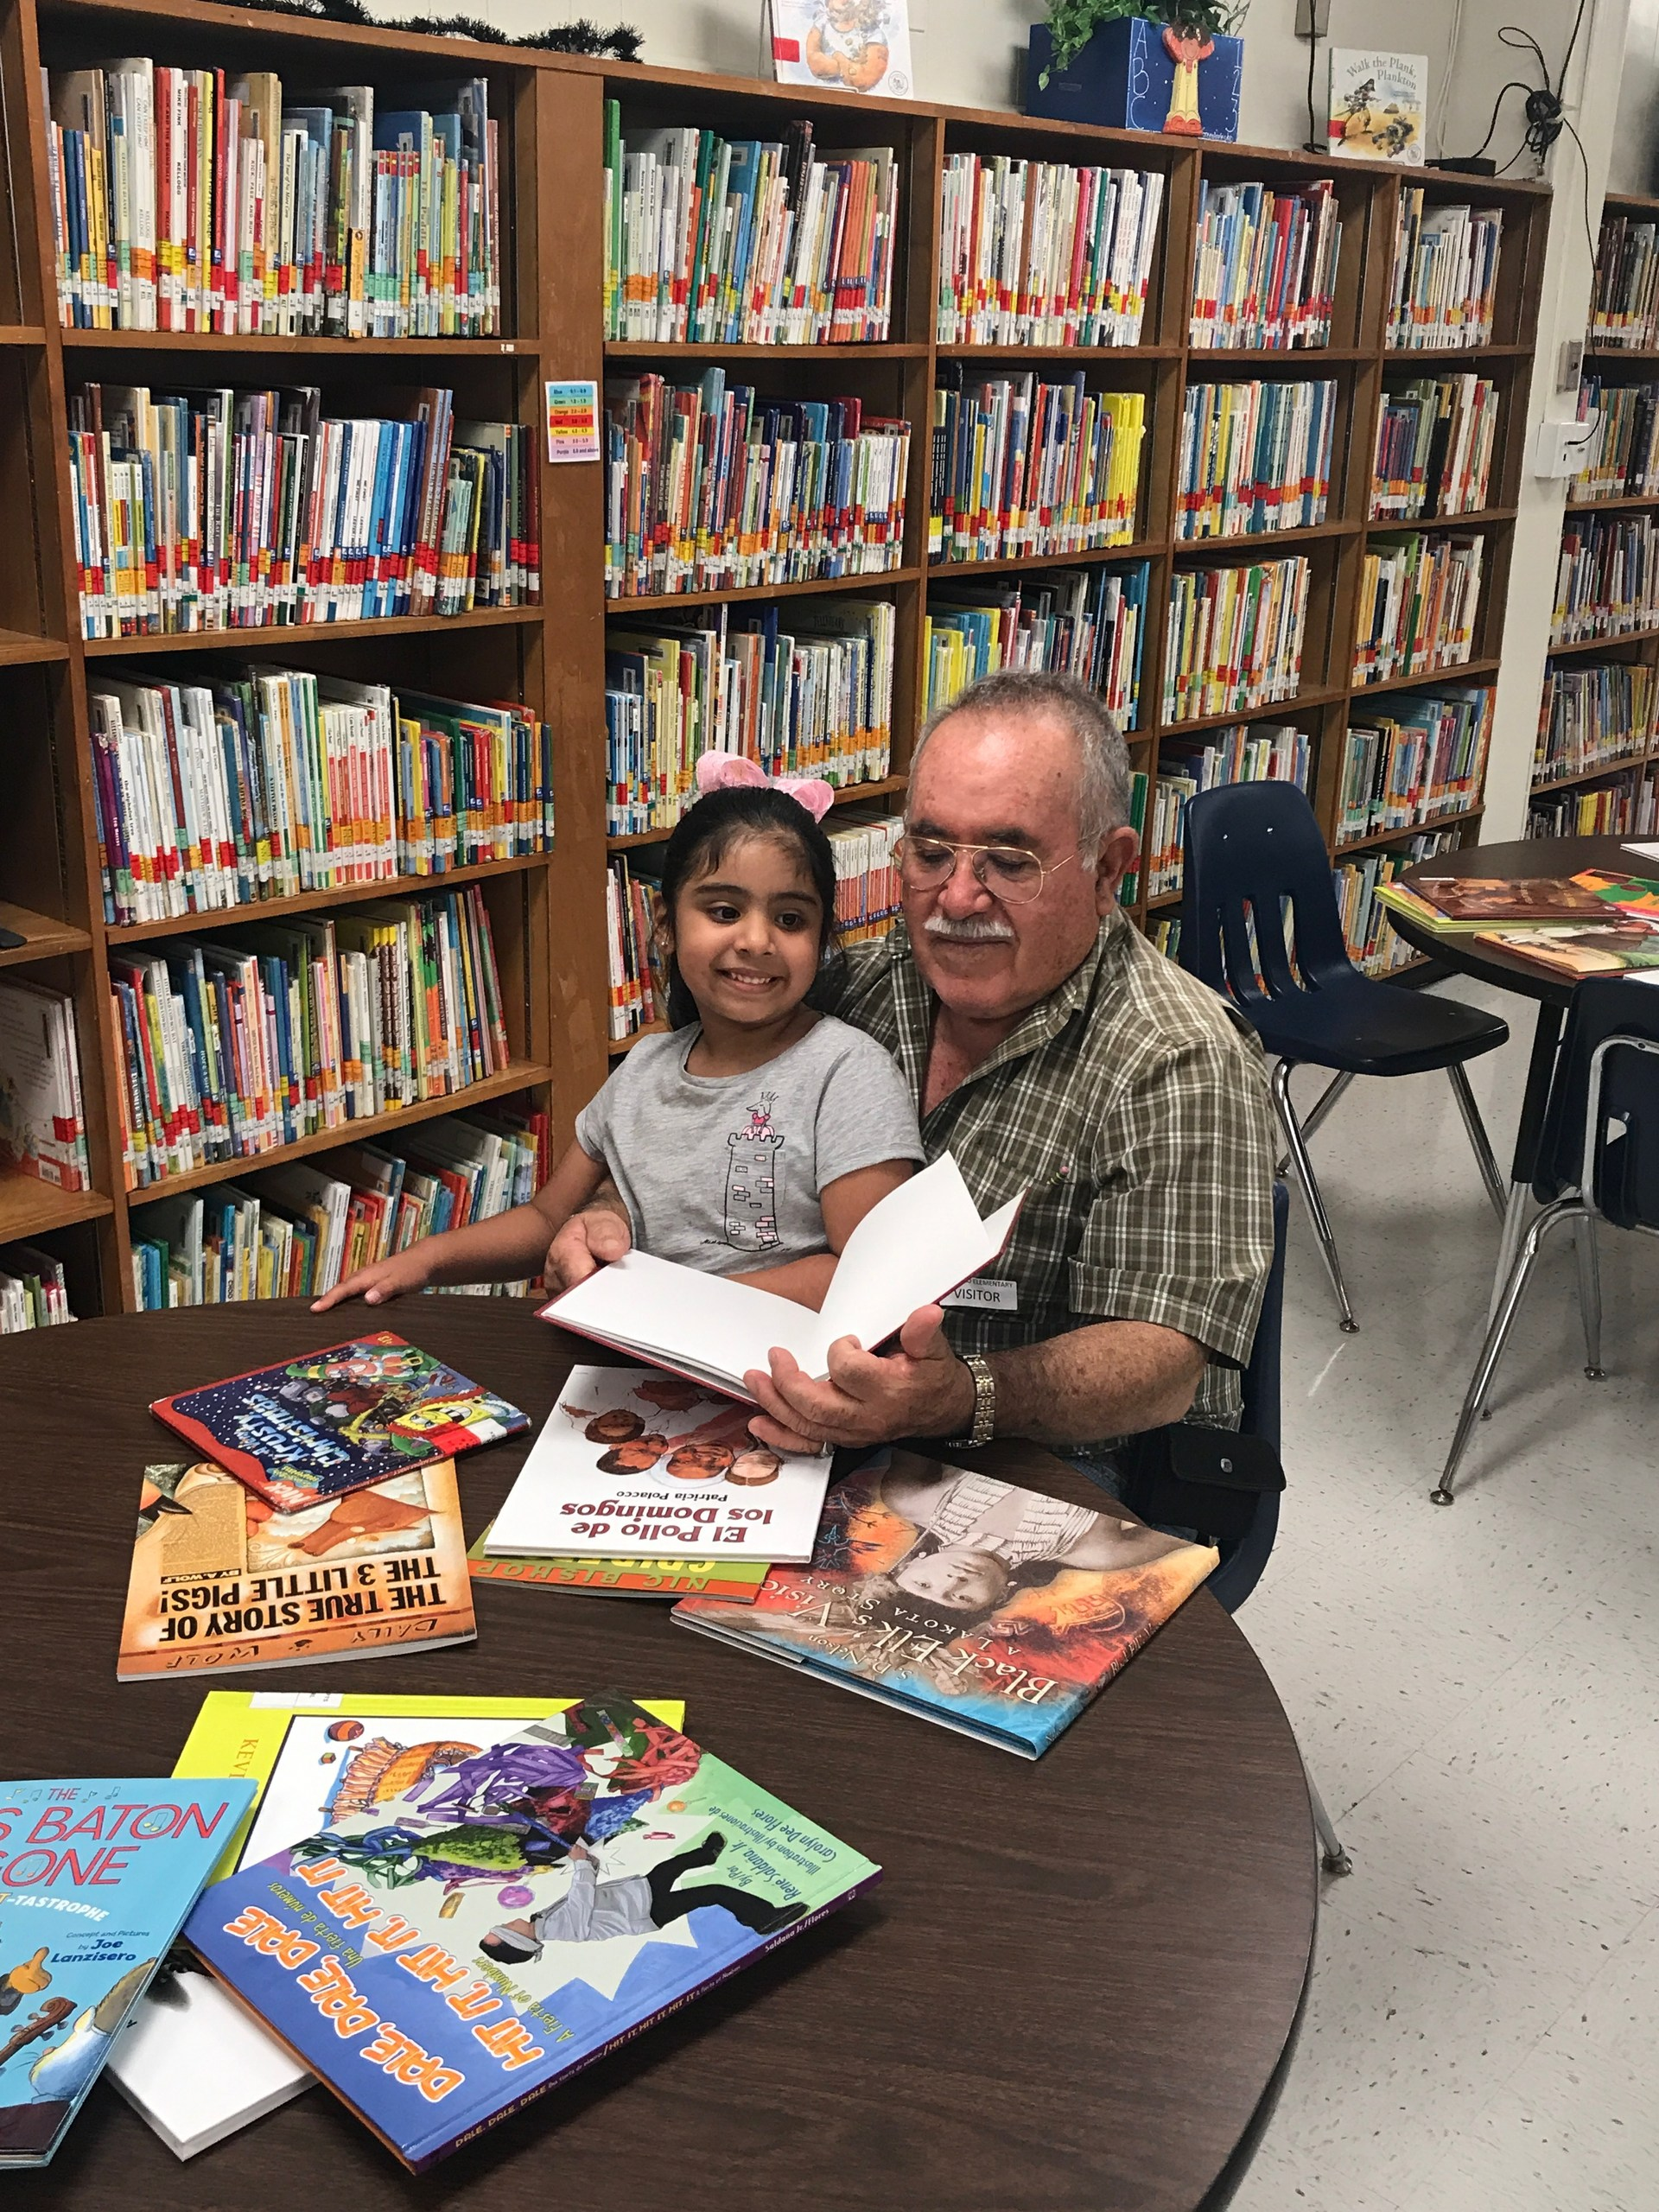 Grandfather reading to granddaughter in library